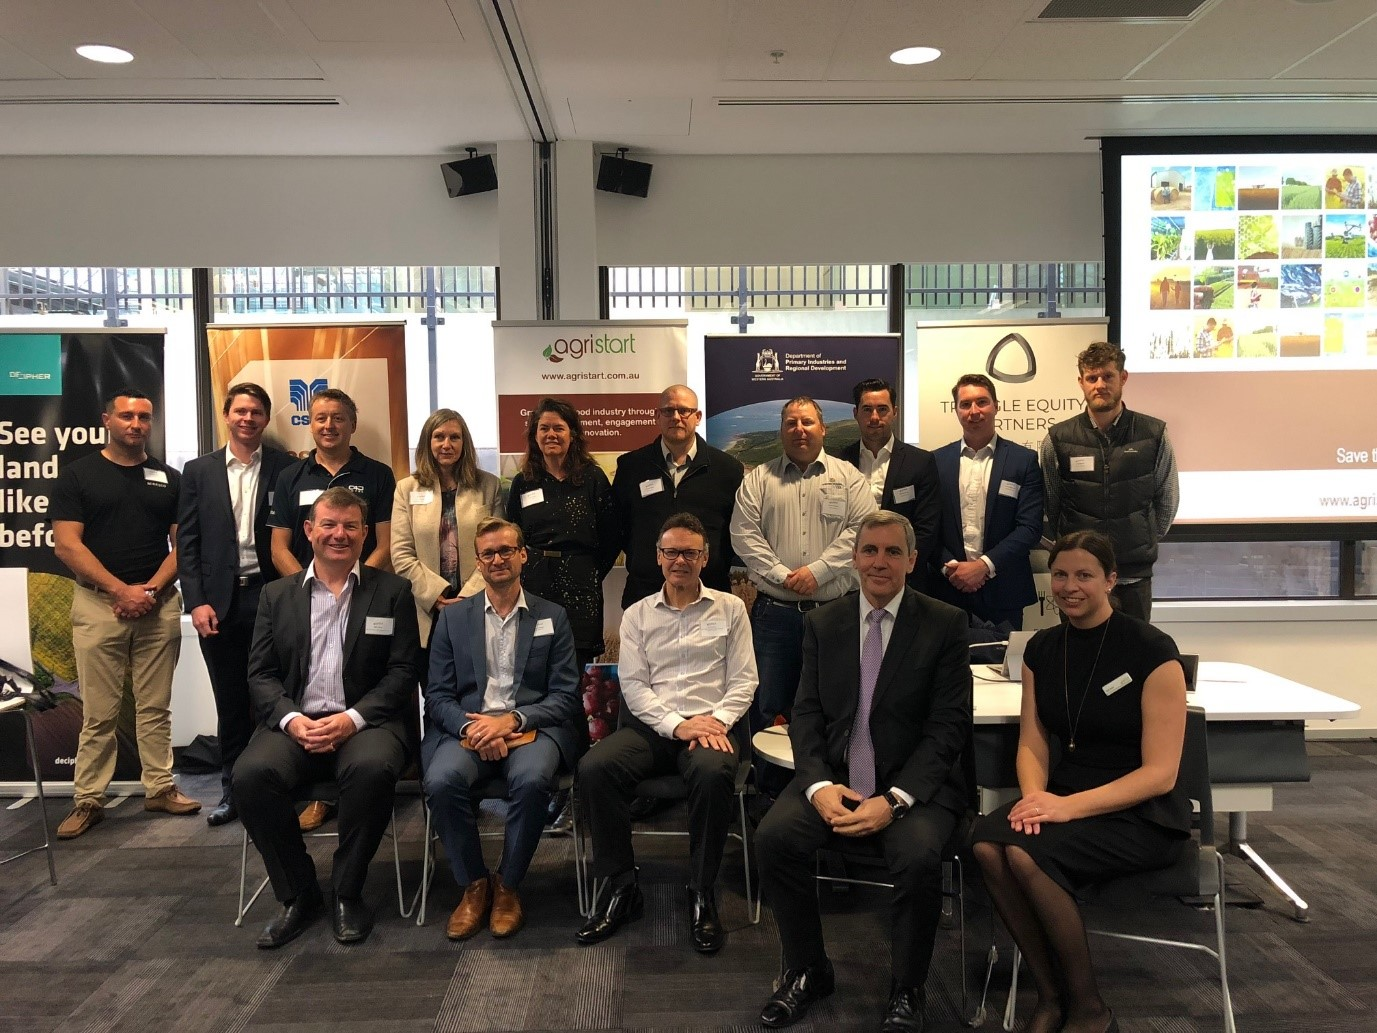 Parliamentary Secretary to the Minister for Water; Fisheries; Forestry; Innovation and ICT; Science, Chris Tallentire MLA and AgriStart Directors Tash Ayers and Peter Rossdeutscher with some of the HARVEST 2.0 cohort at the program launch.